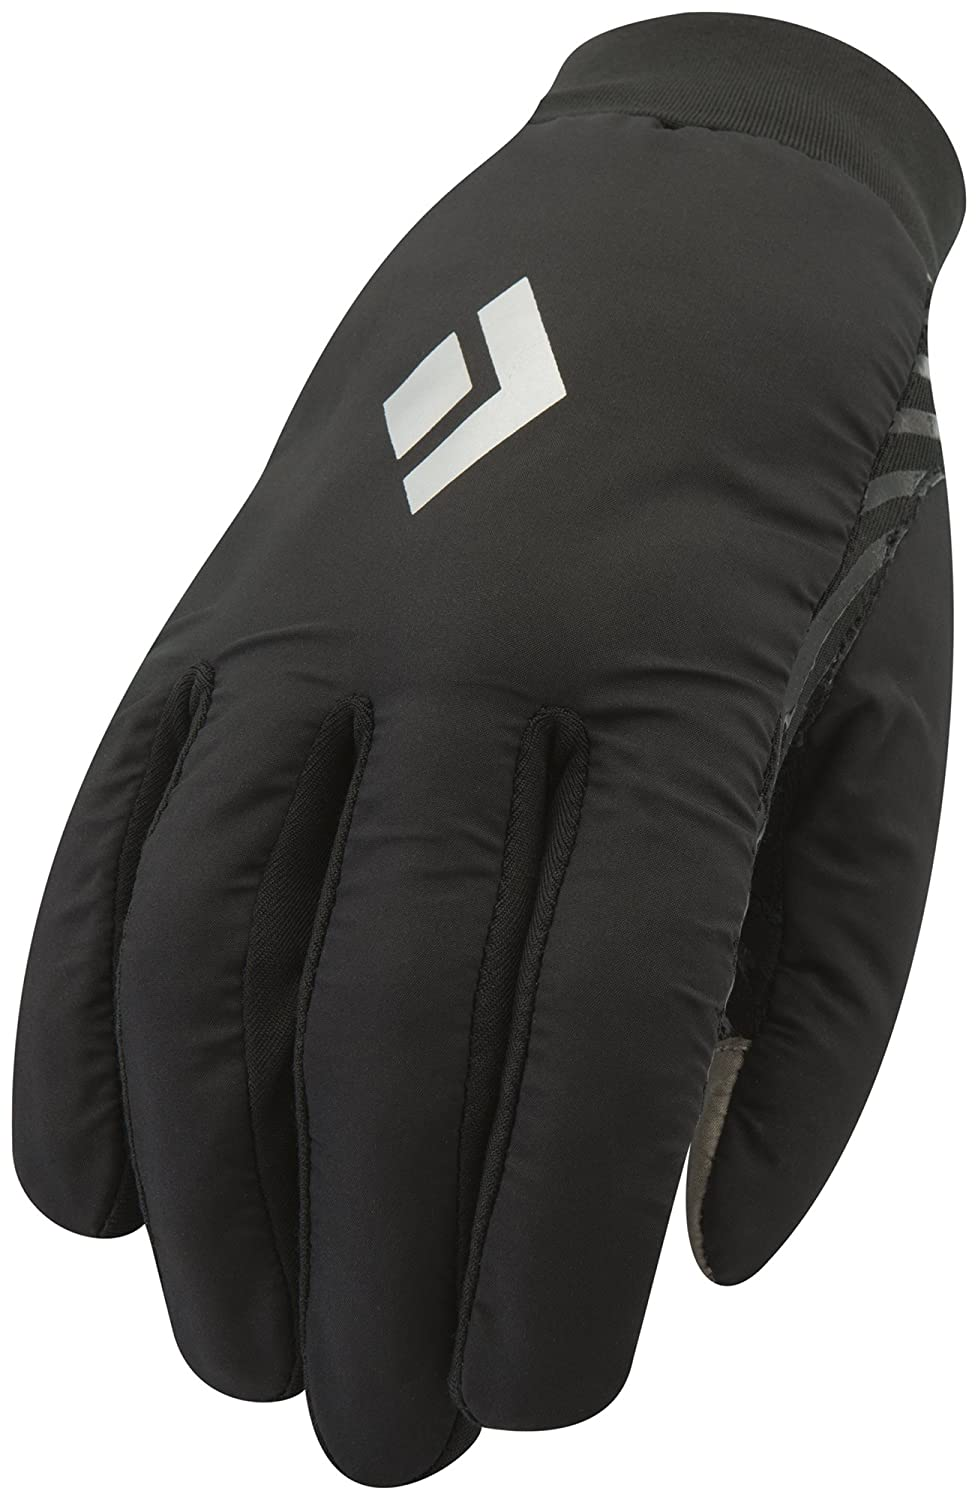 Black Diamond Herren Fingerhandschuhe